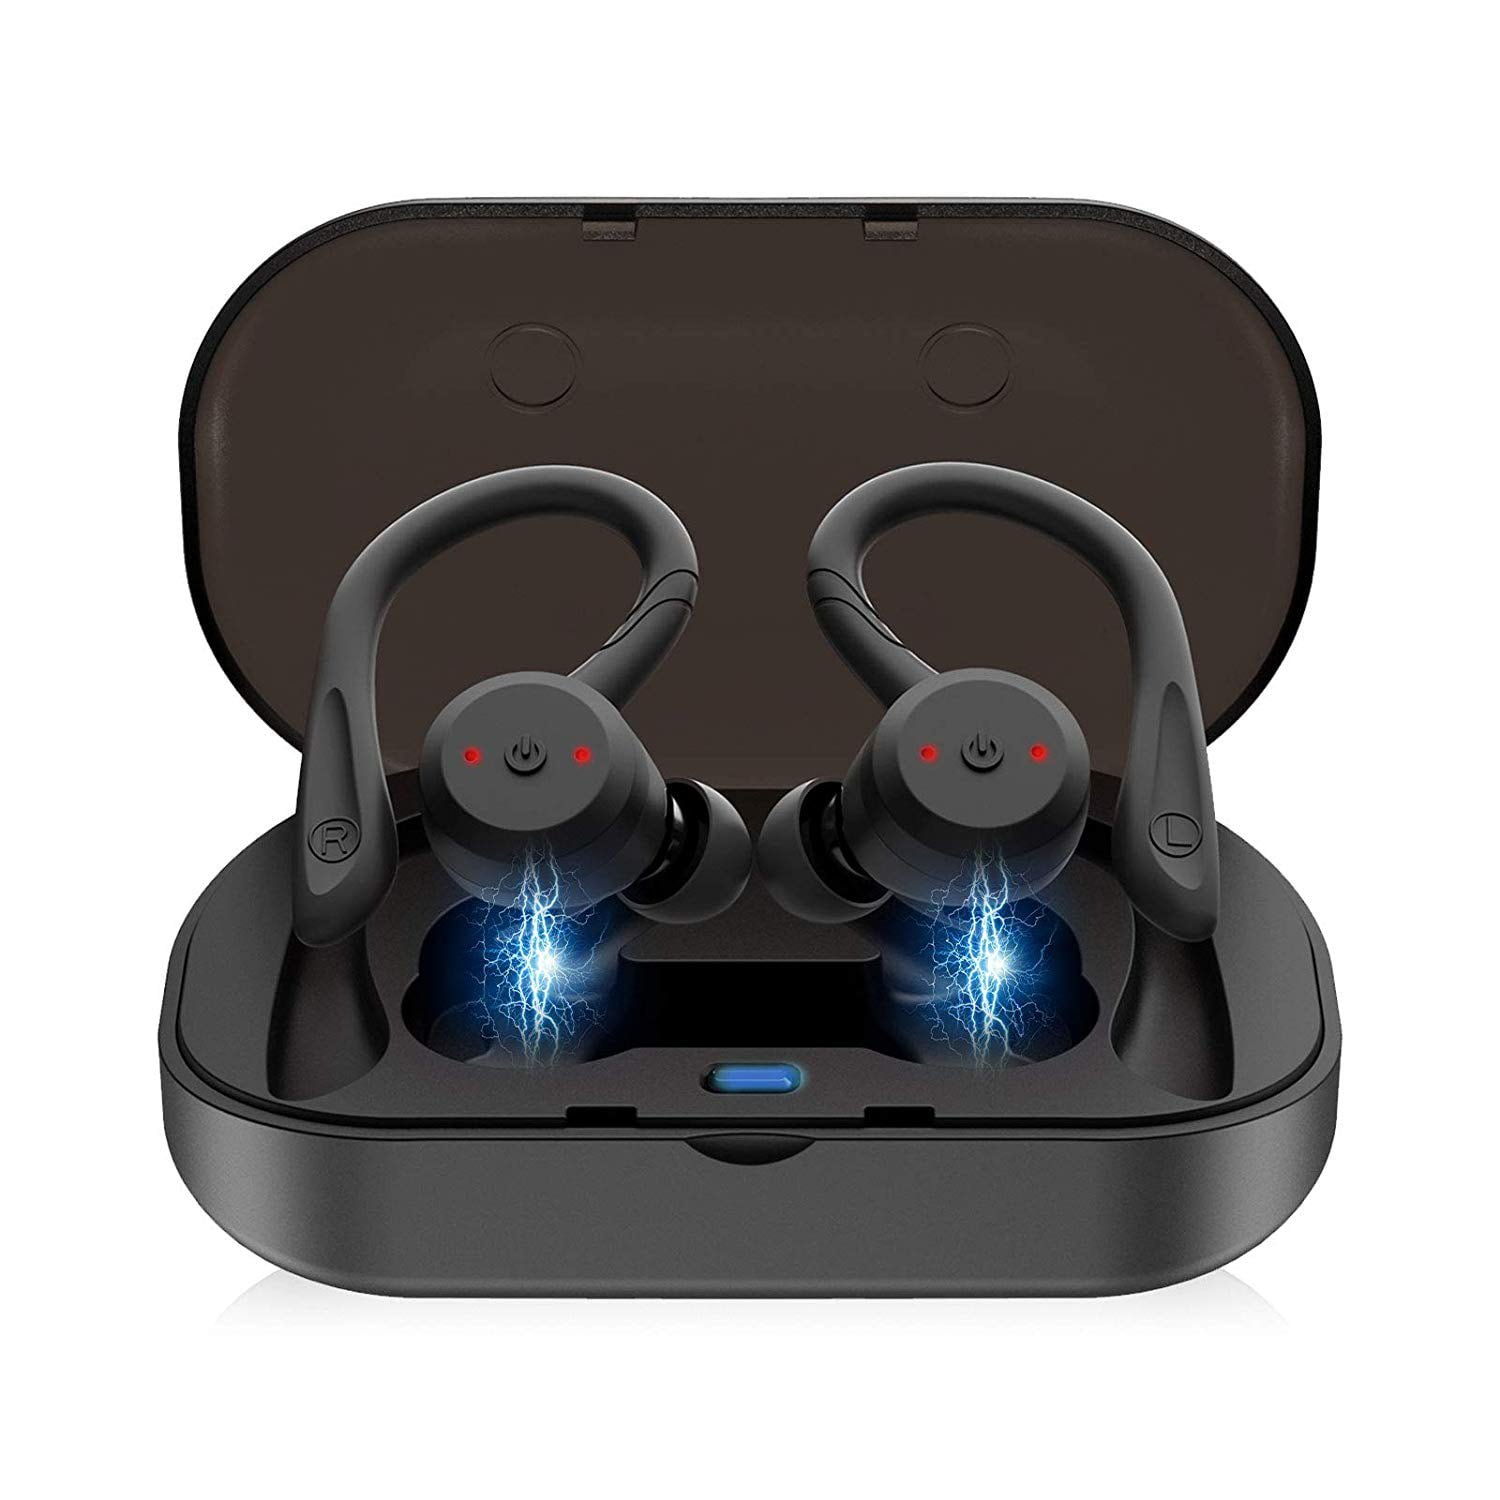 EEEKit True Wireless Earbuds, Bluetooth 5.0 in-Ear Earbuds ...